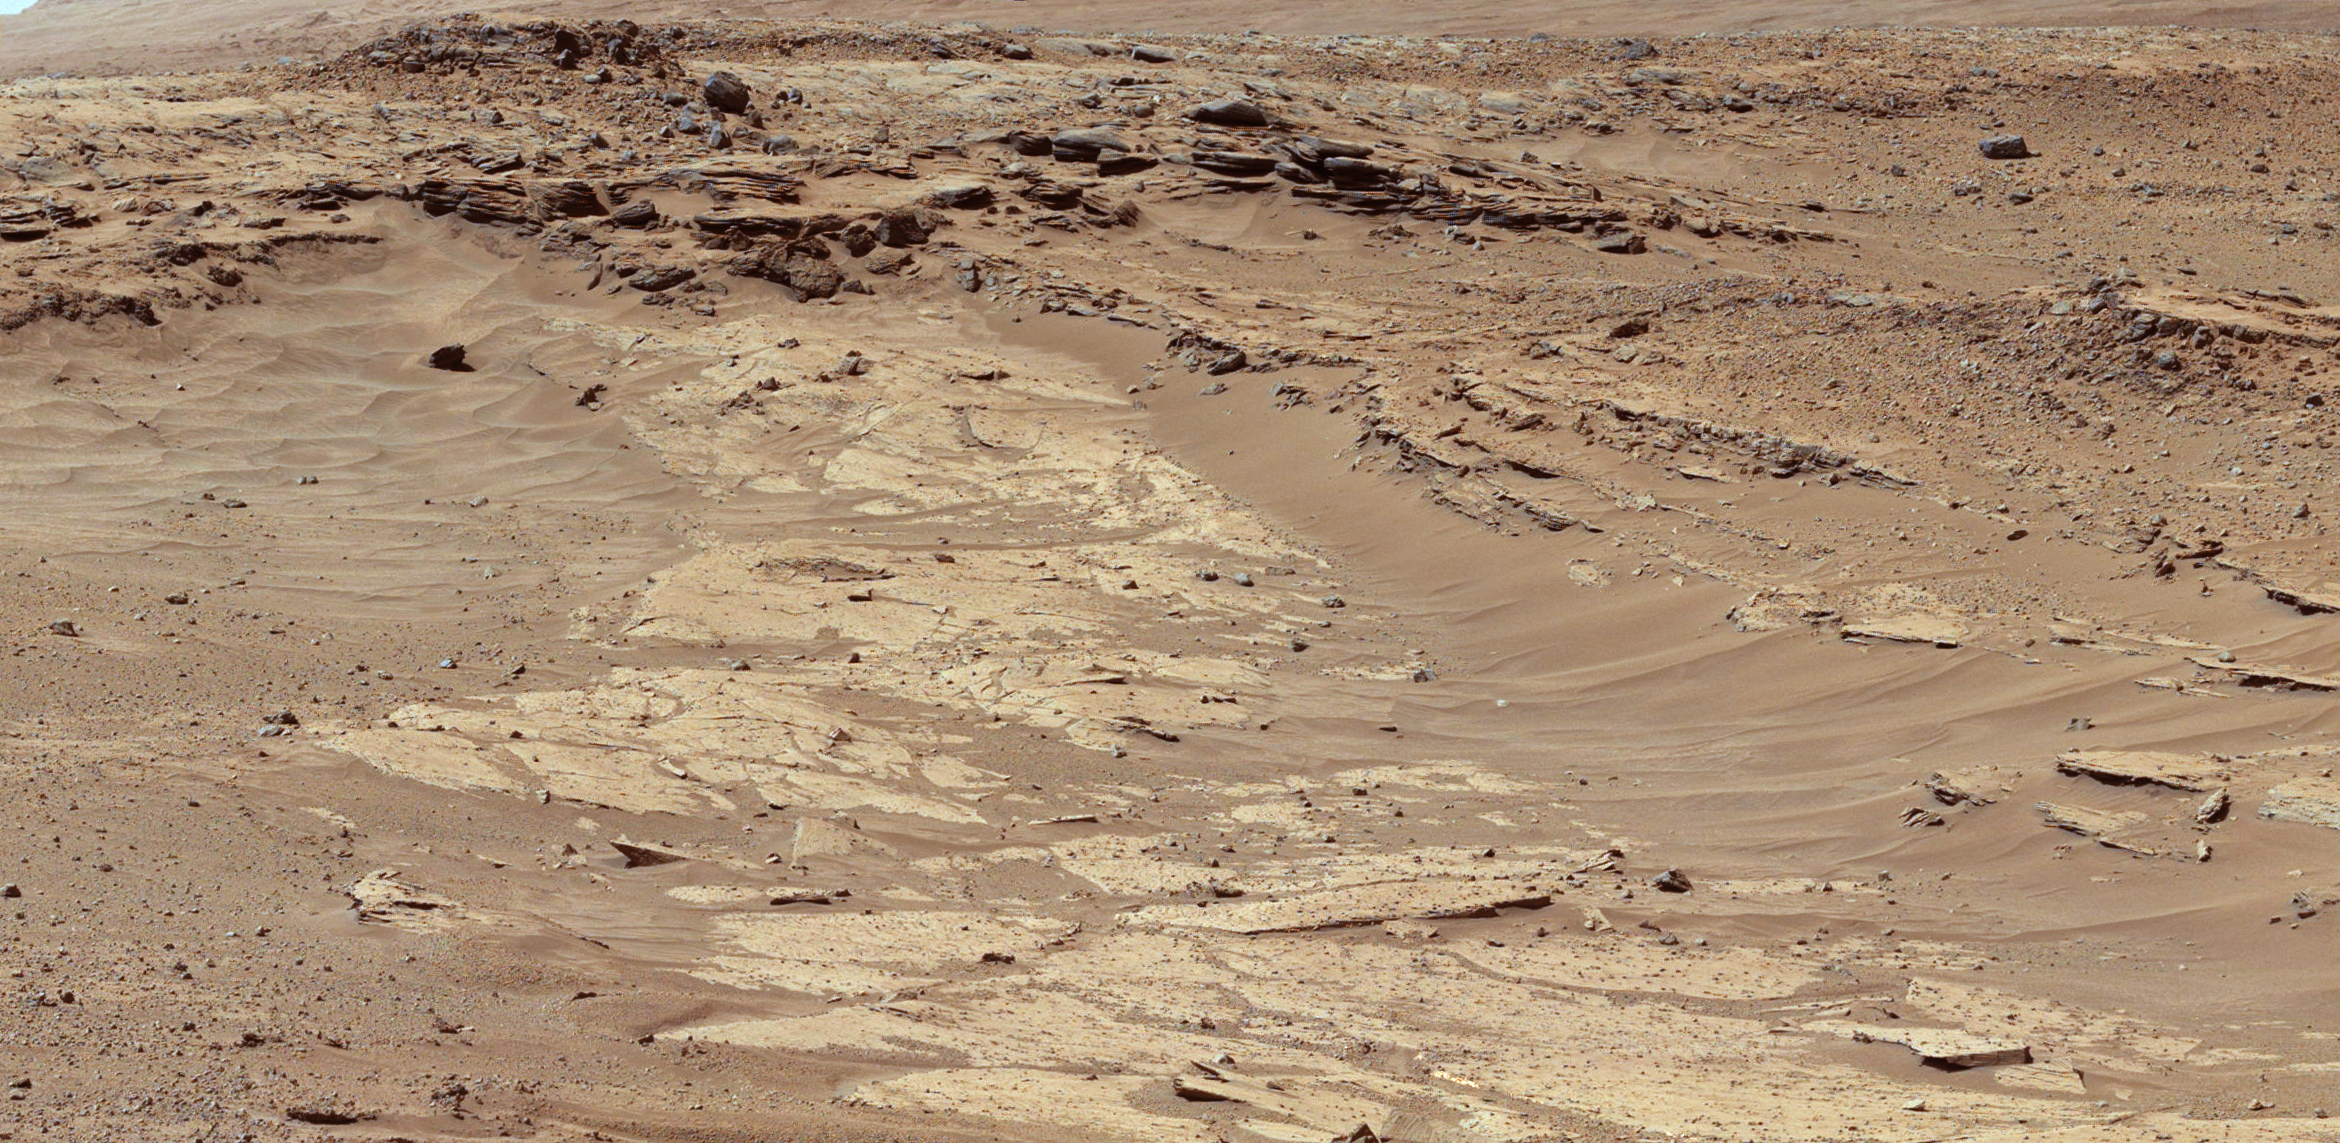 pictures from nasa mars - photo #35